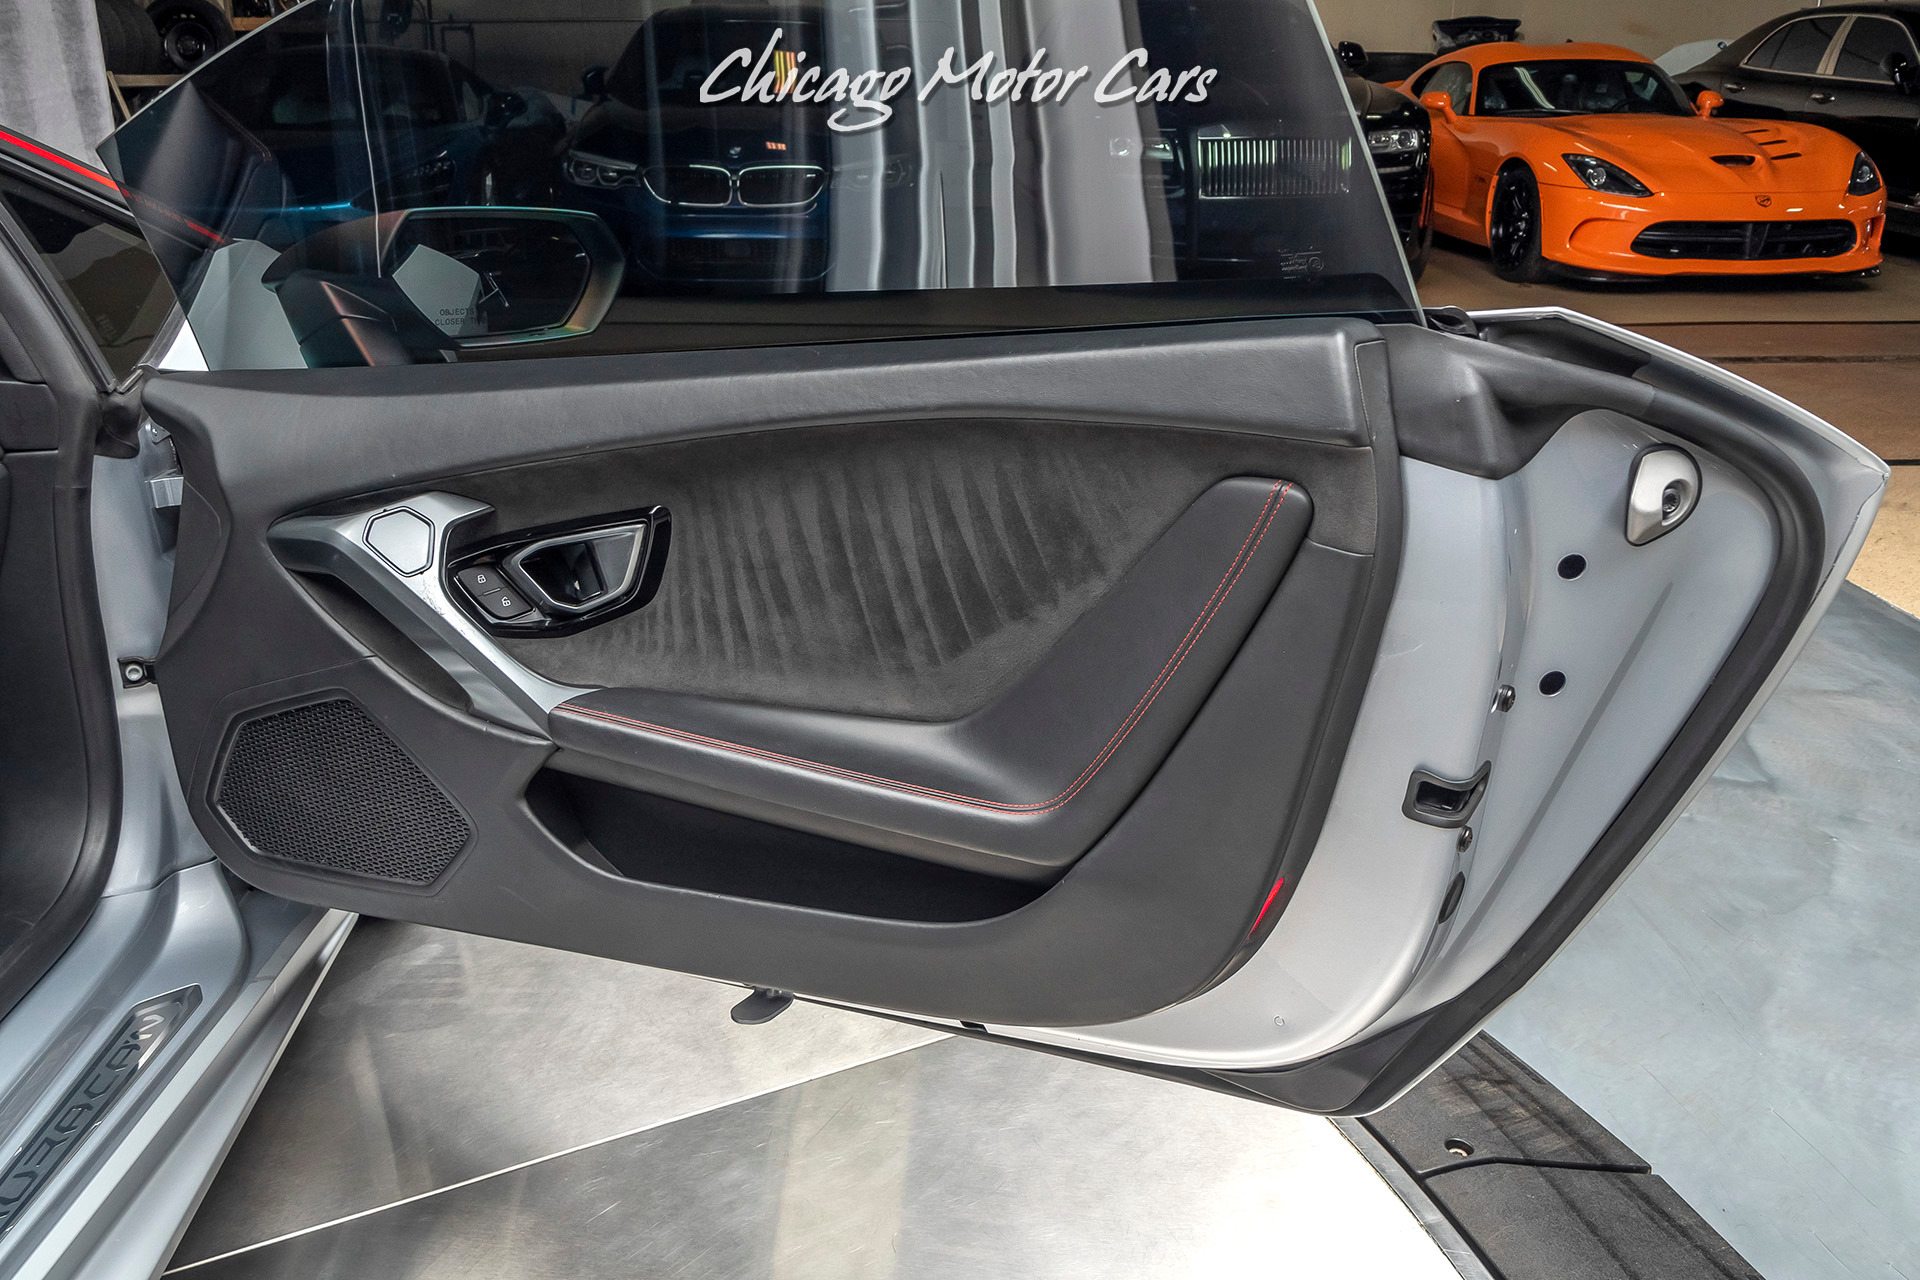 Used-2015-Lamborghini-Huracan-LP610-4-Huracan-Coupe-ONLY-19K-MILES-20-INCH-FORGED-WHEELS